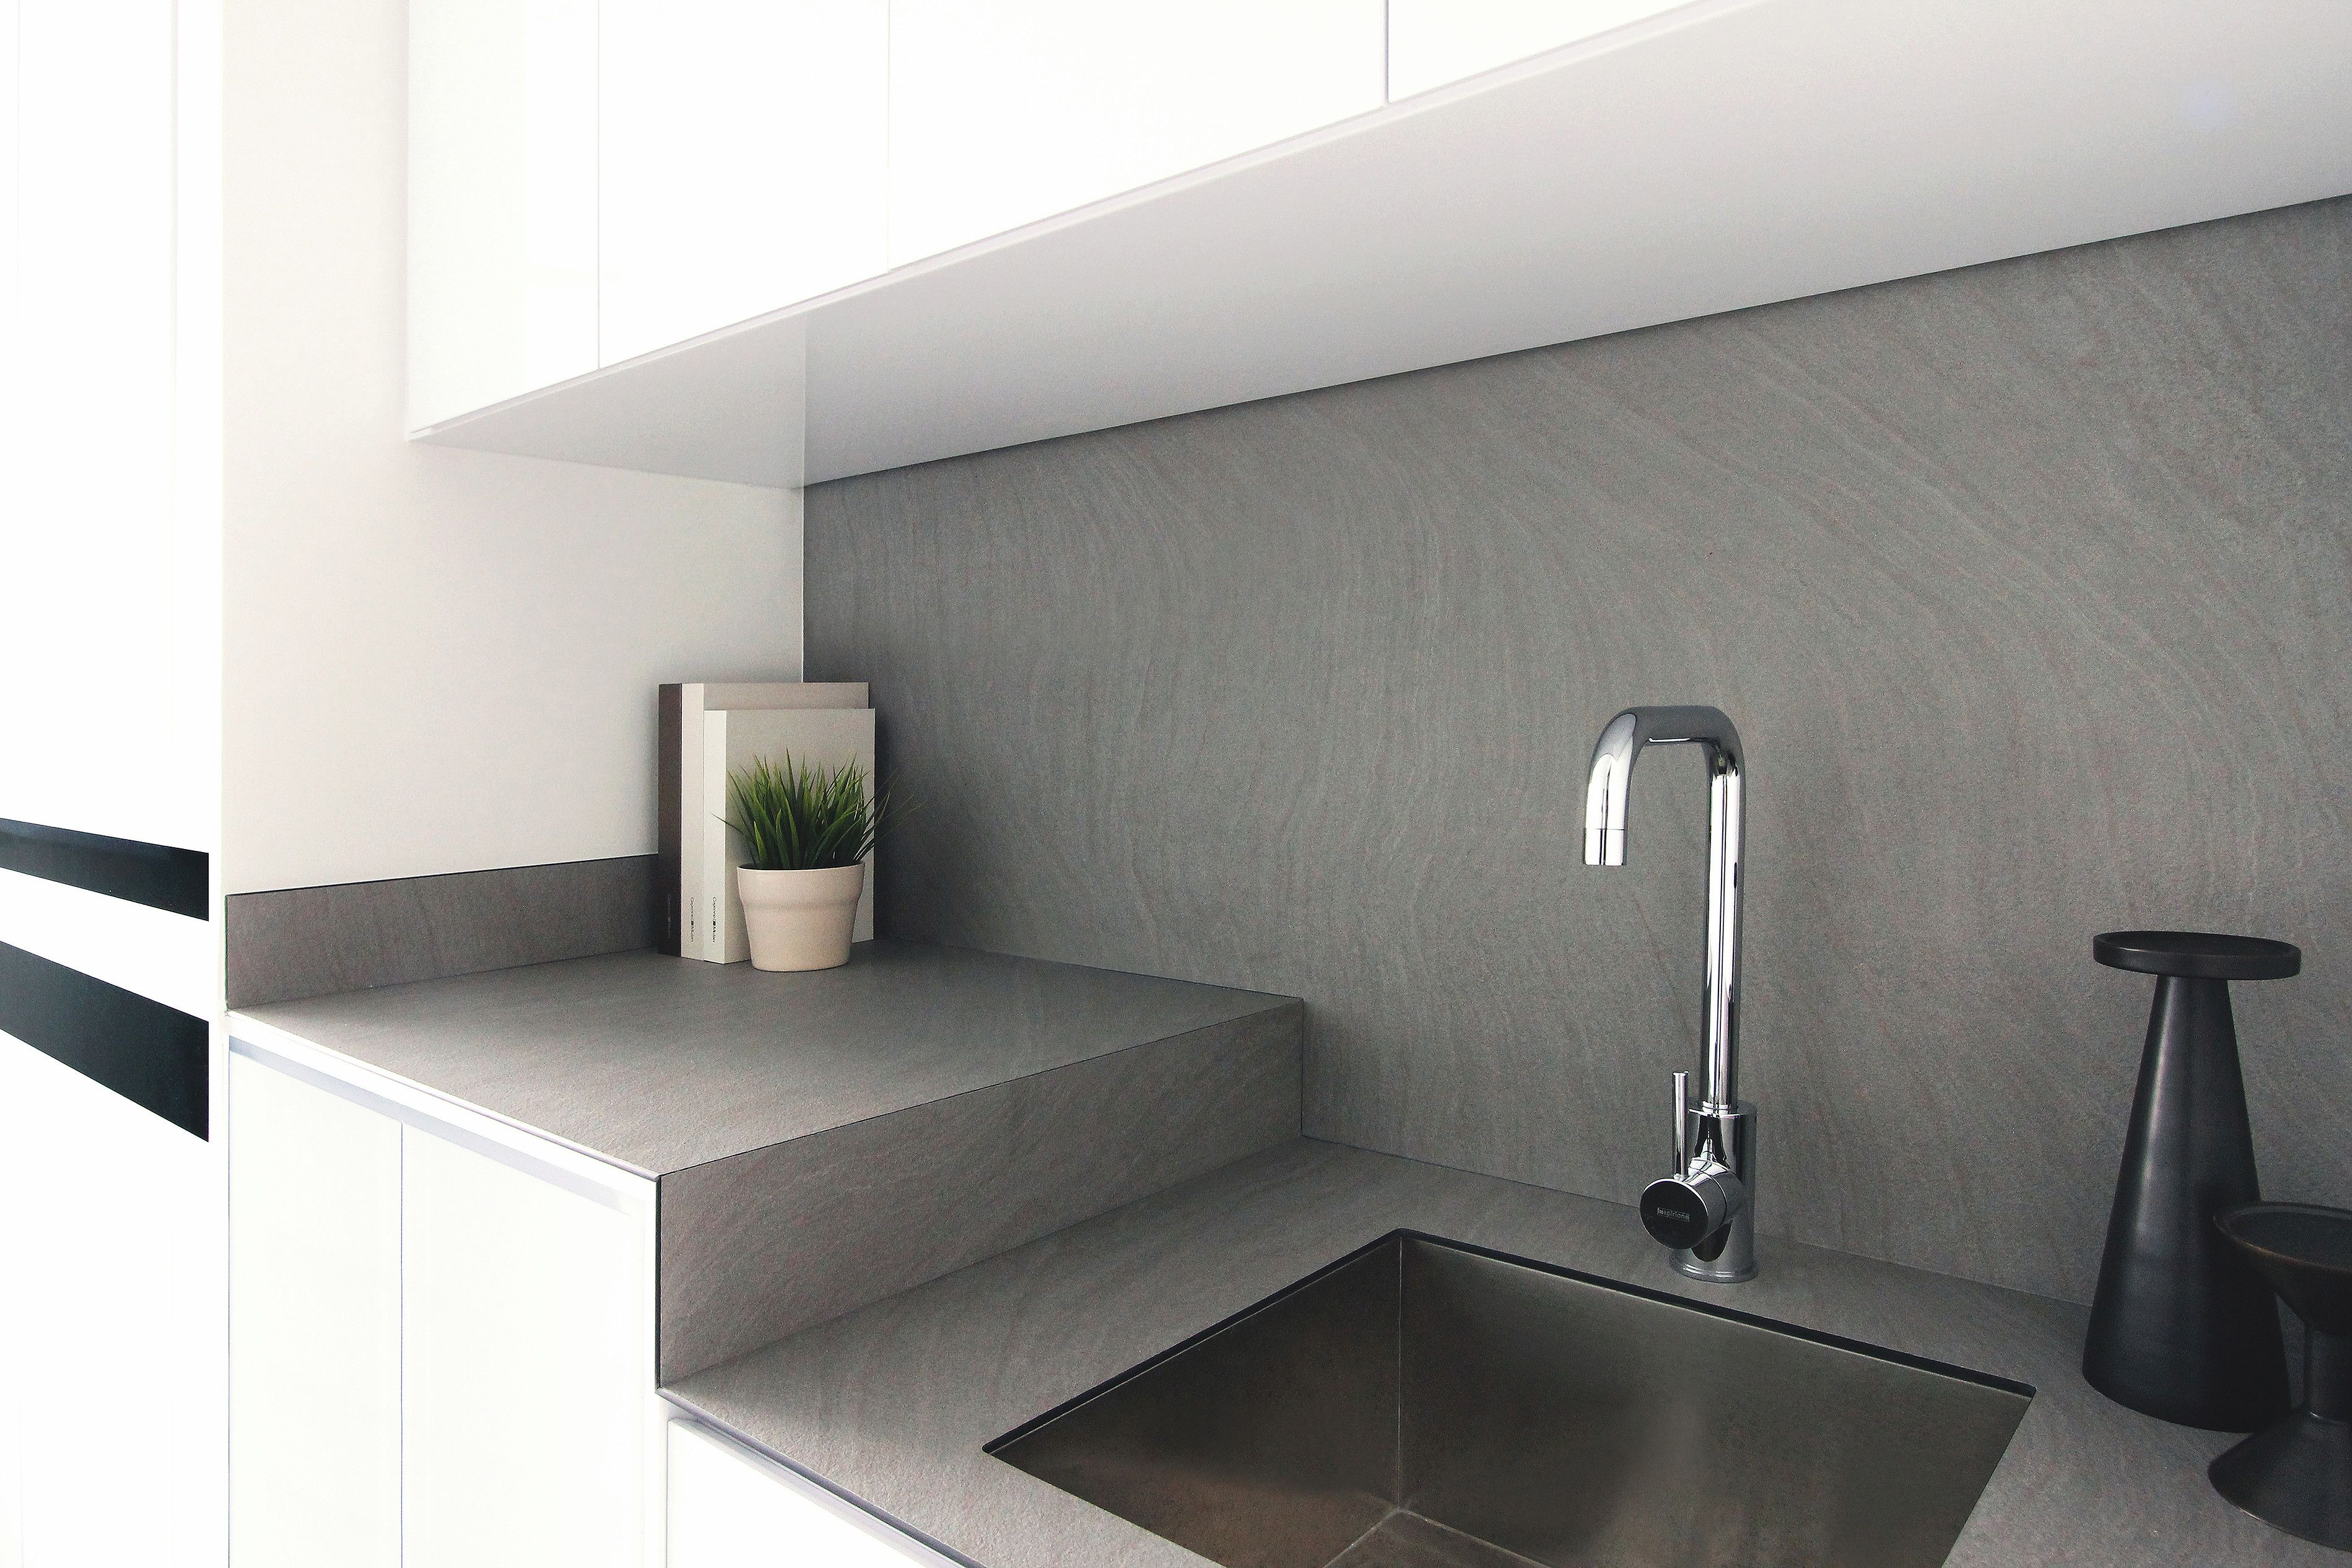 Marble Granite Quartz Solid Surface Countertops Vanity Tops And Kitchen Tops Singapore Countertops Solid Surface Countertops Solid Surface Countertops Kitchen